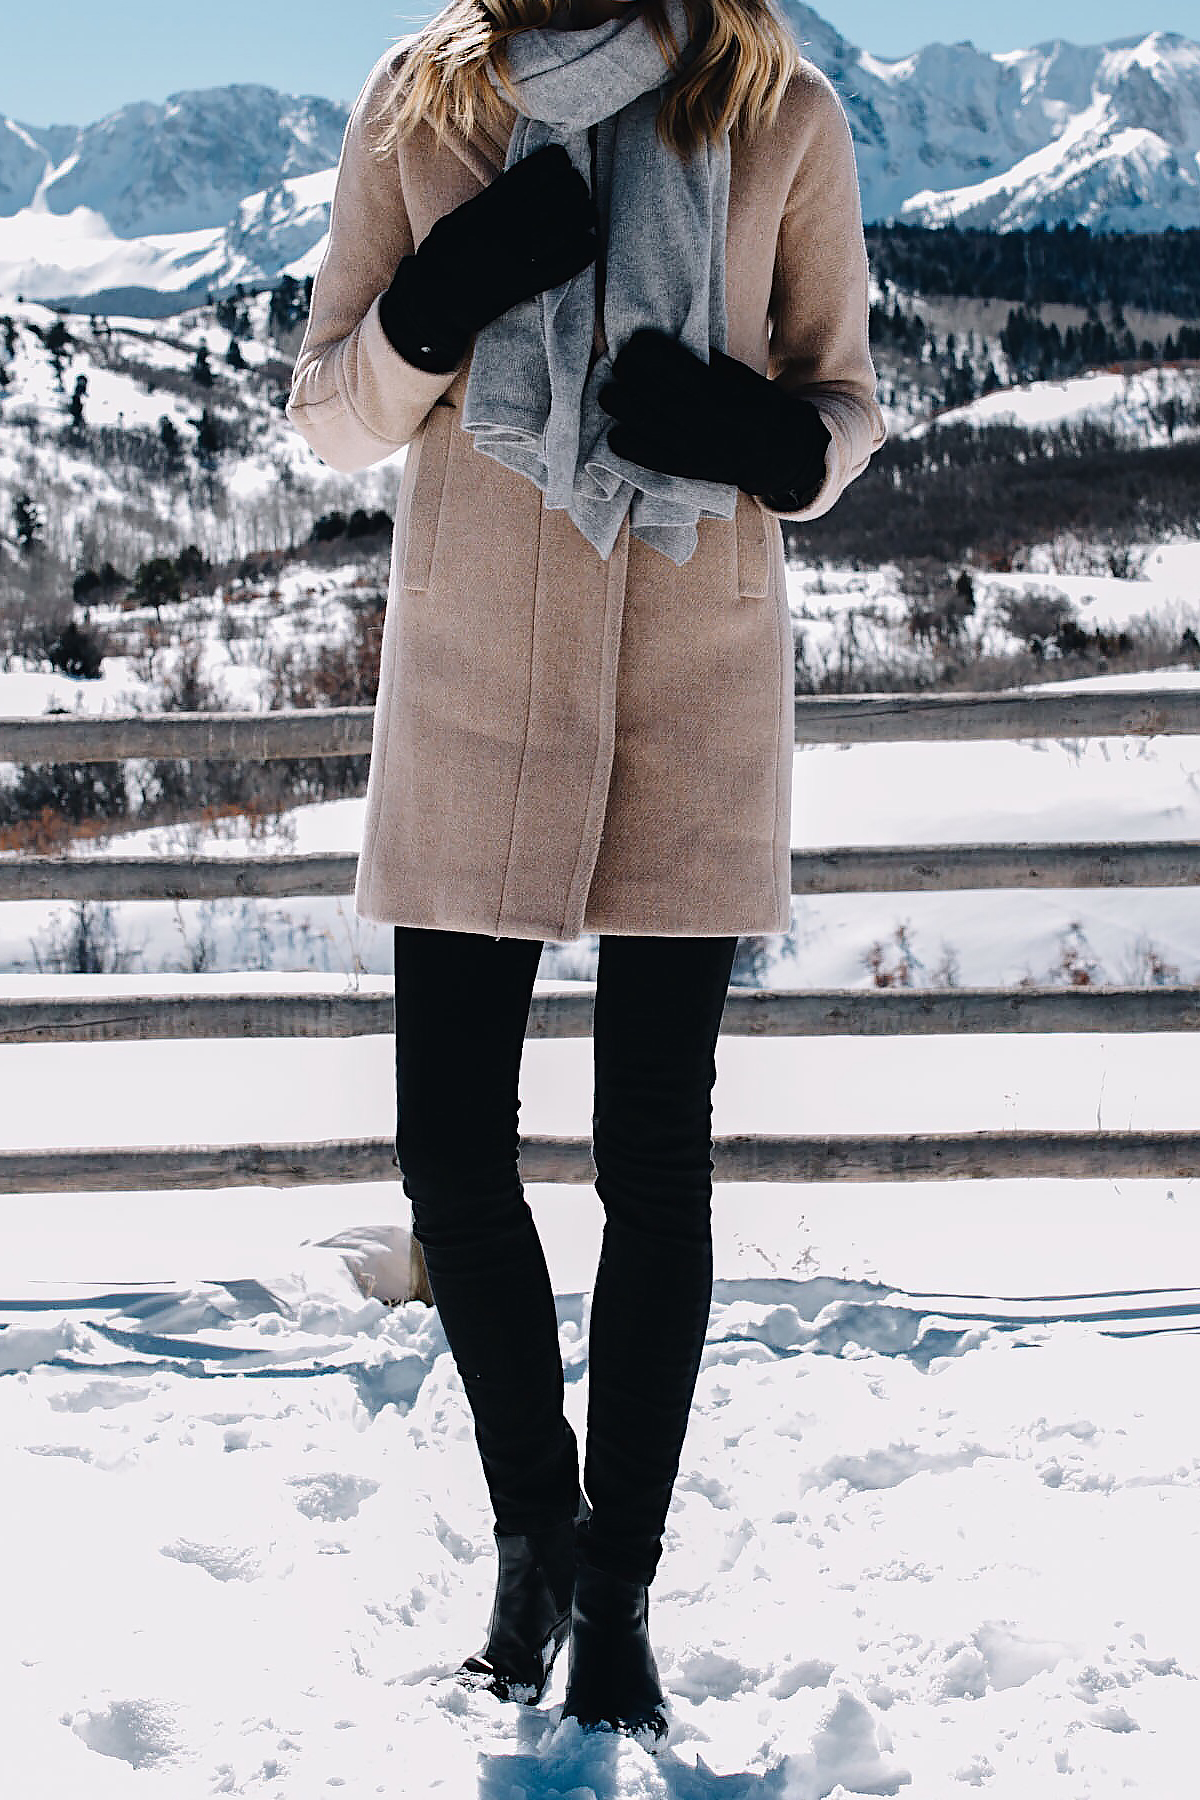 Telluride CO Snow Grey Scarf Woman Wearing Camel Coat Black Skinny Jeans Black Gloves Fashion Jackson Dallas Blogger Fashion Blogger